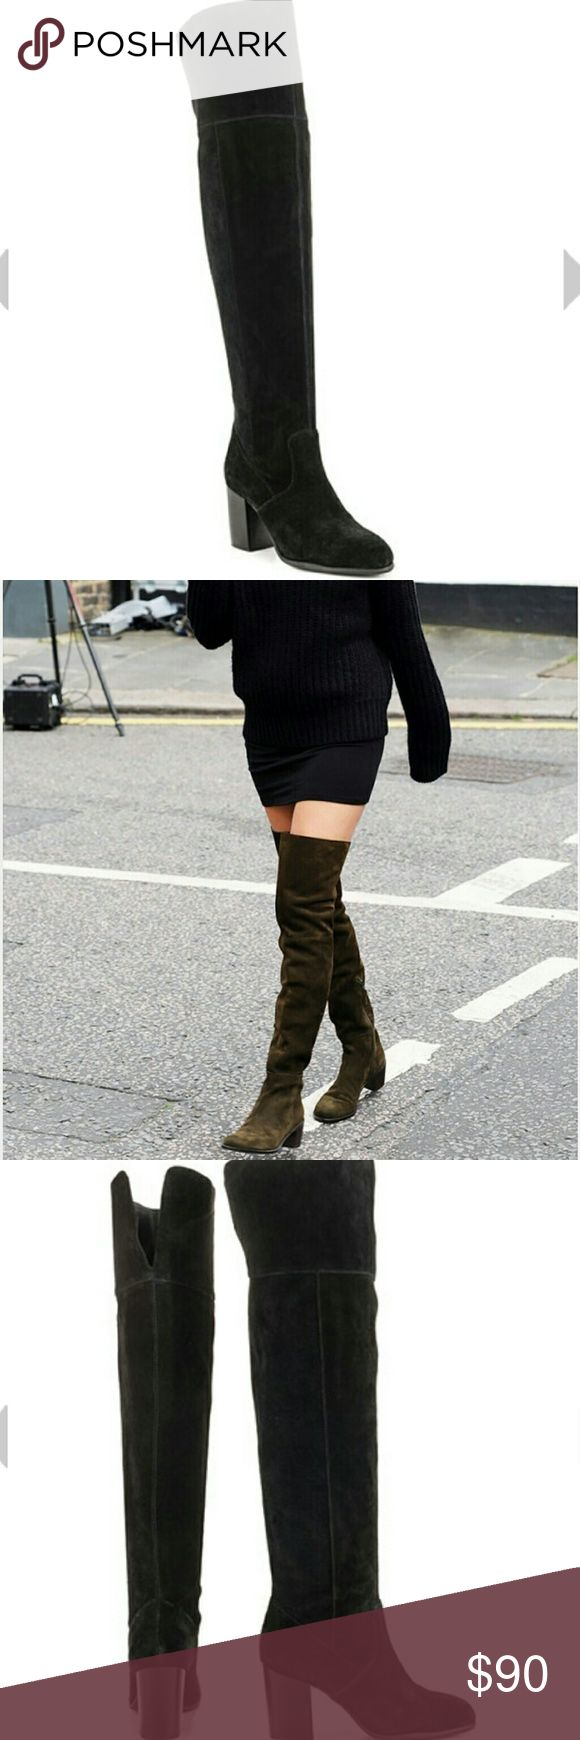 New Jessica Simpson Over the Knee Boots Suede Round toe Pull on  21 1/8 in height Jessica Simpson Shoes Over the Knee Boots